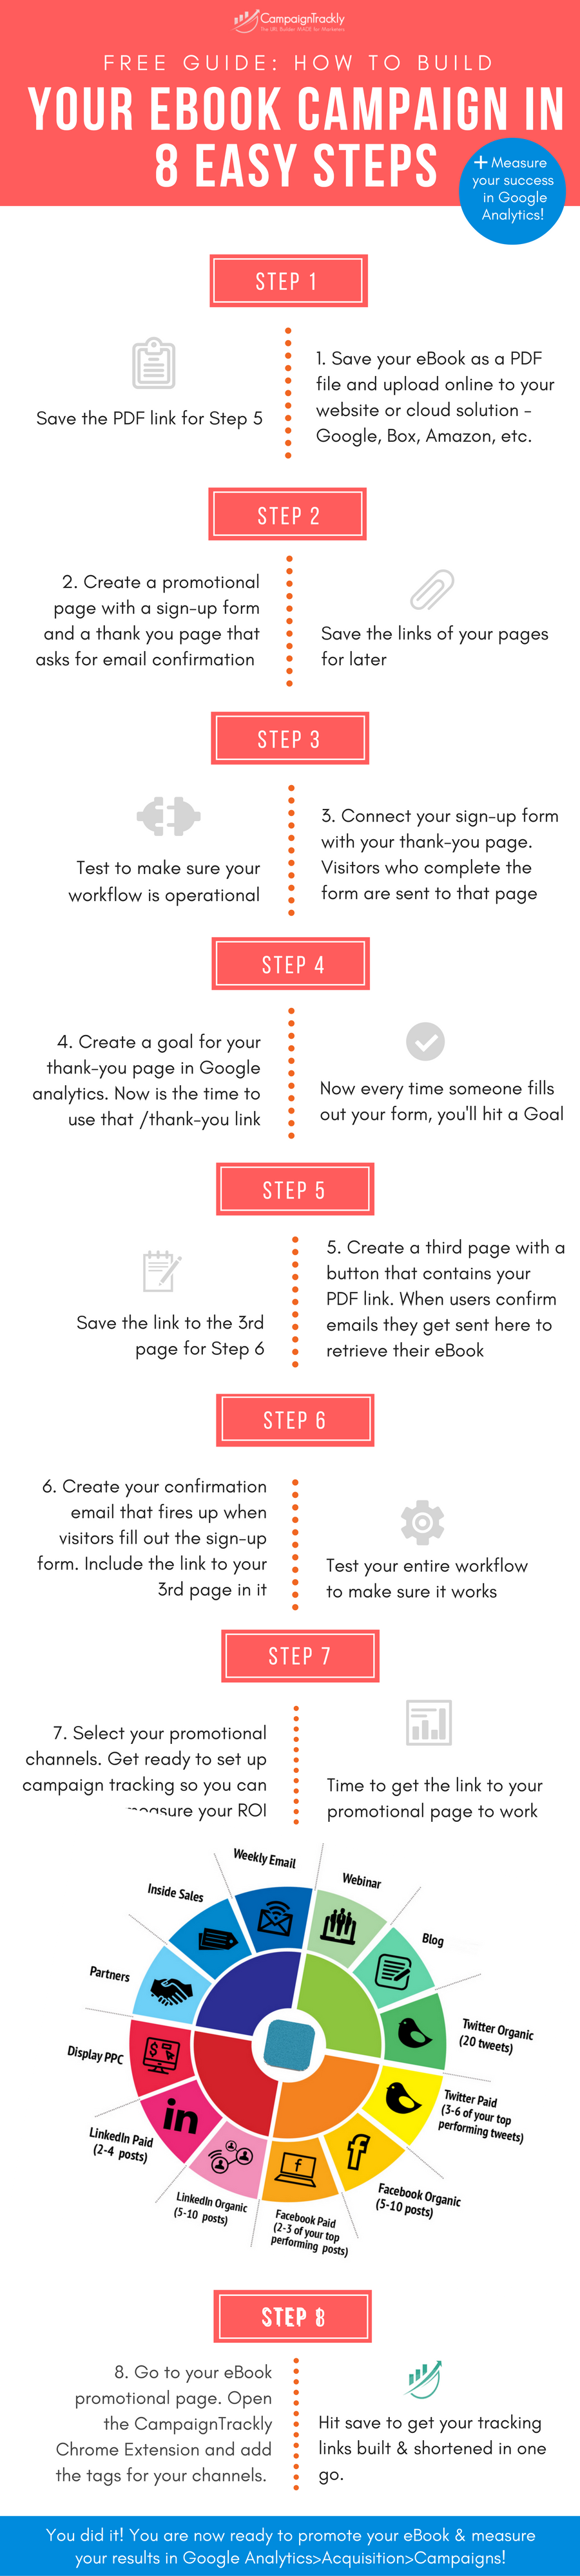 This infographic gives you a step-by-step advice about how to create, launch, and measure your eBook campaign